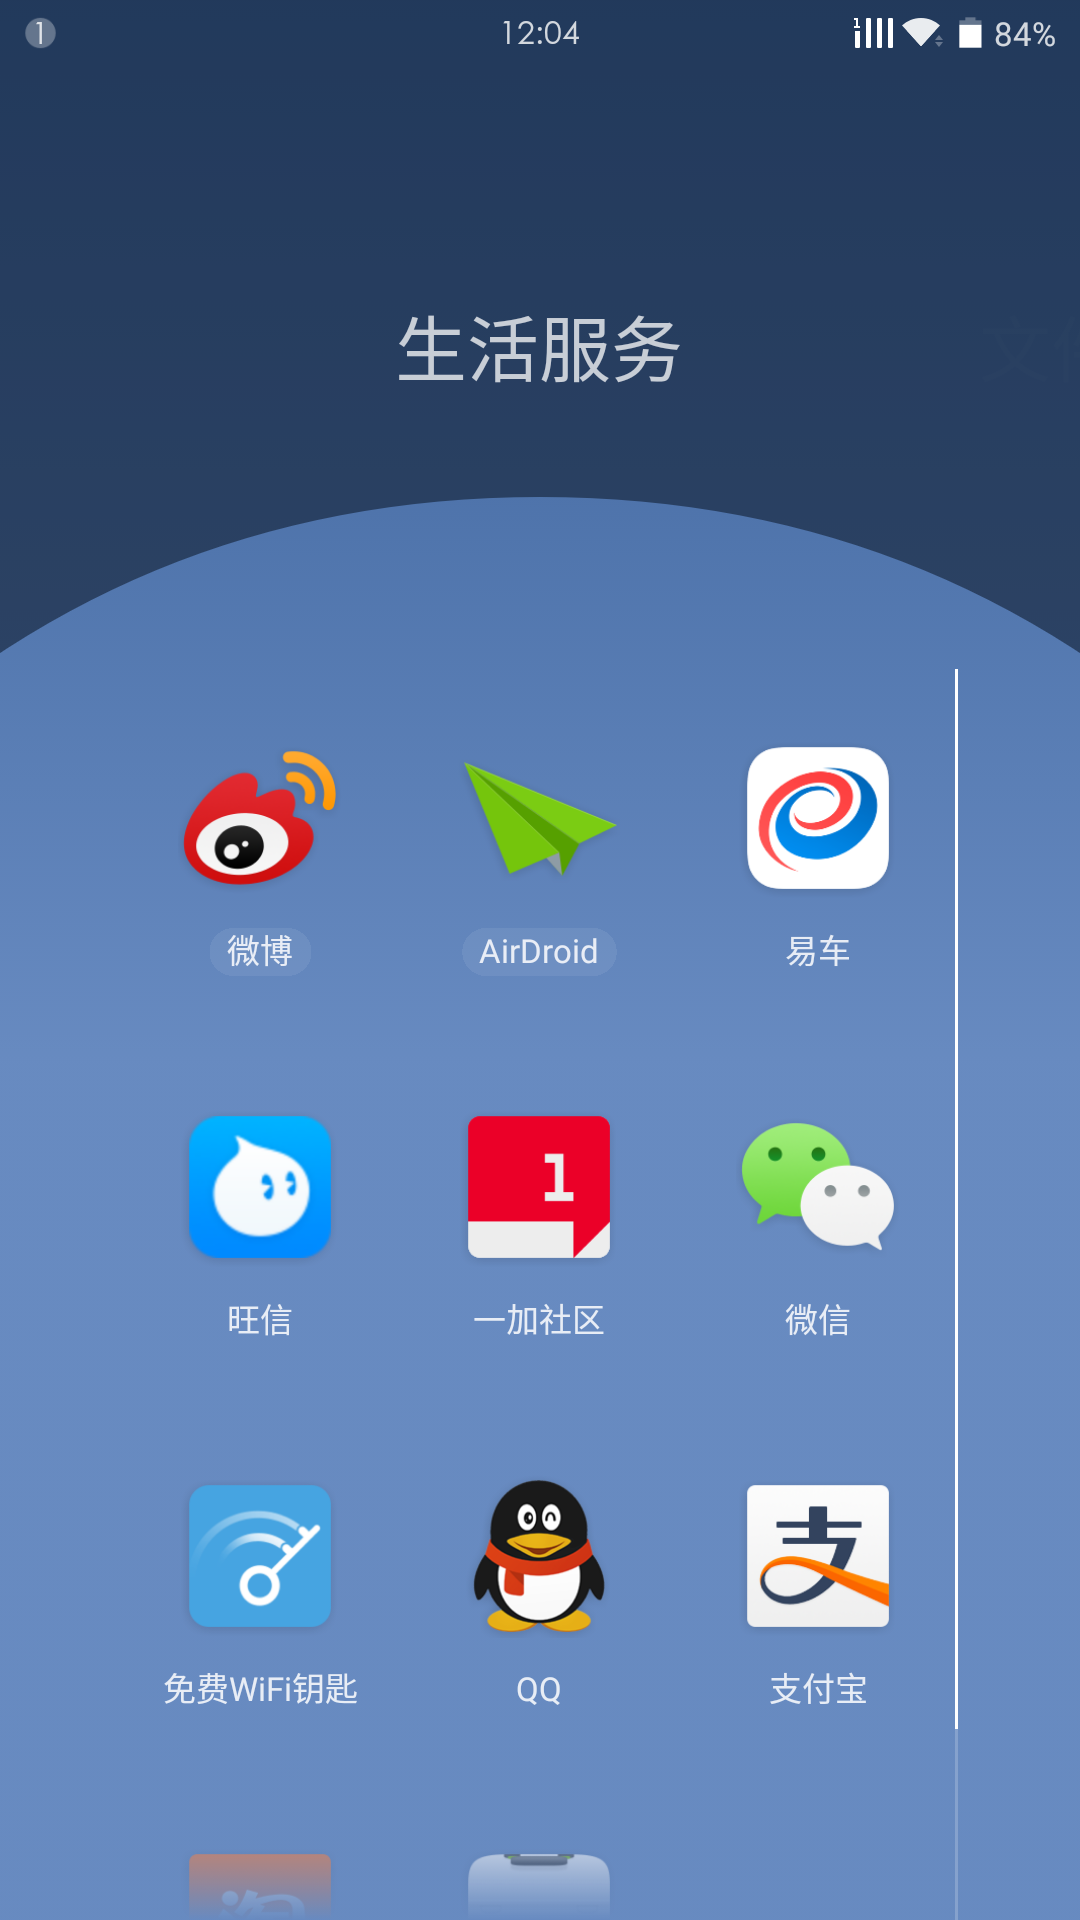 Screenshot_2015-08-28-12-04-53.png